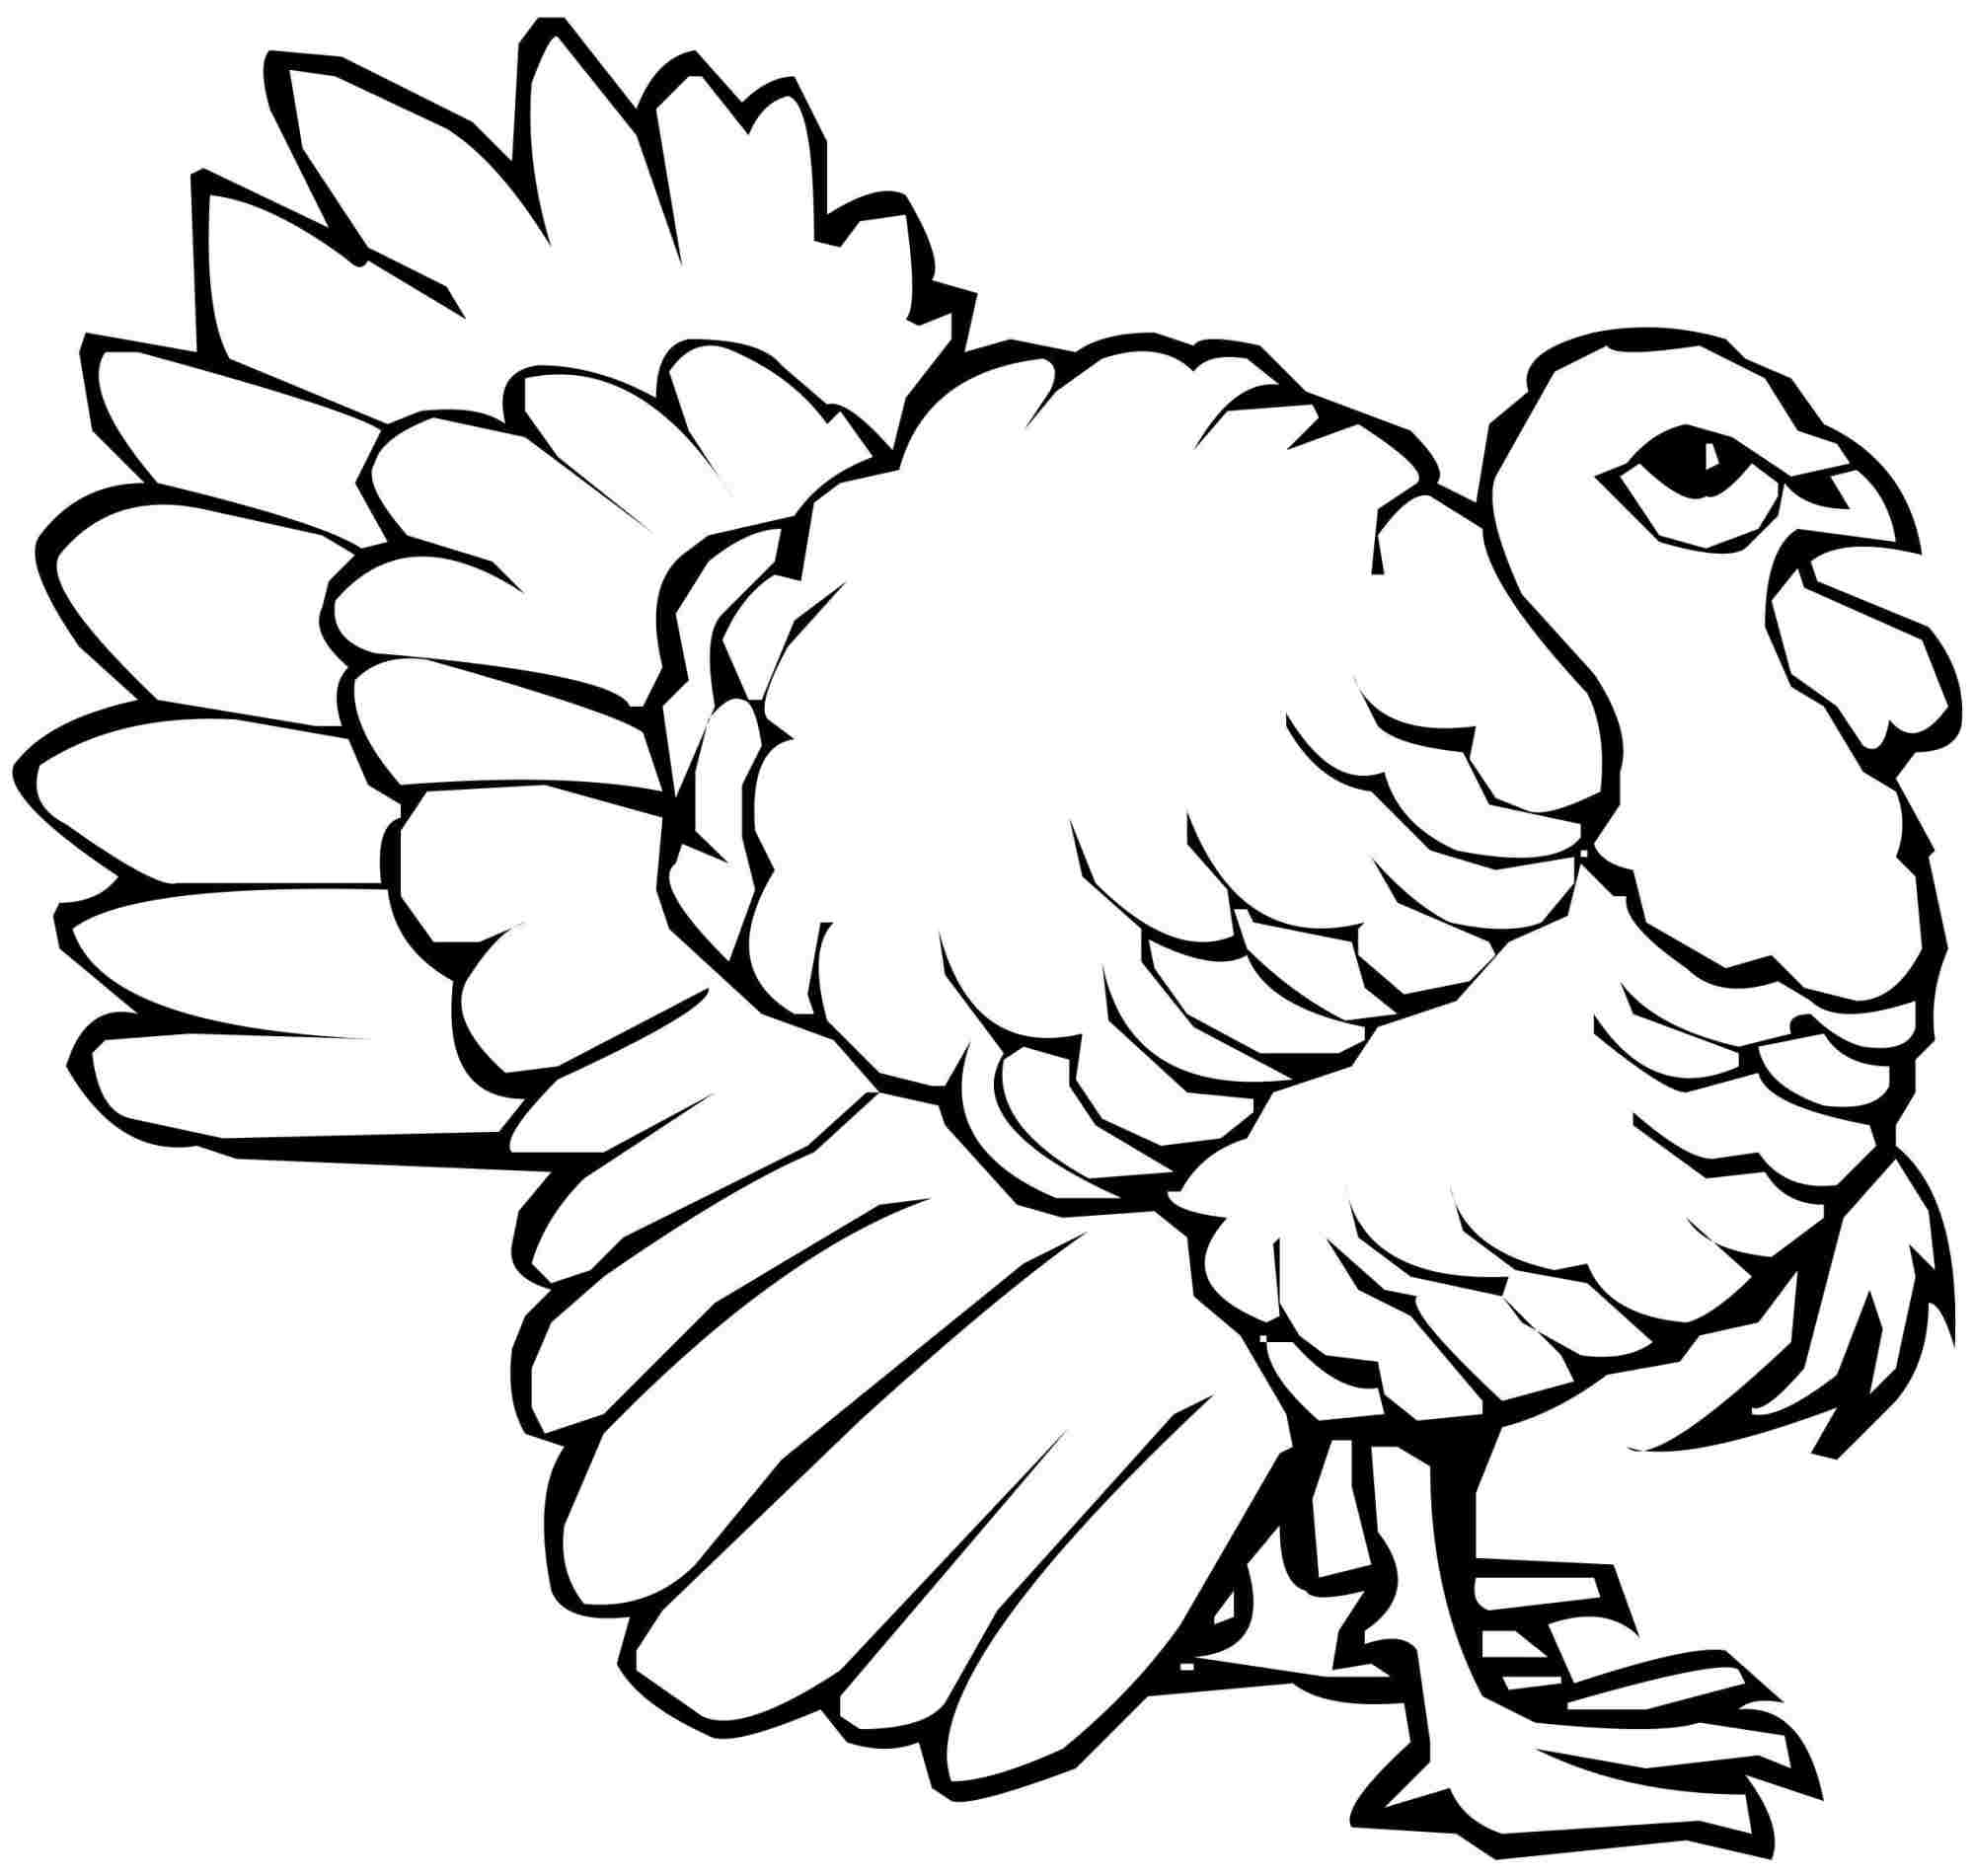 2000x1901 New Thanksgiving Turkey Colouring Pages For Girls Boys Free